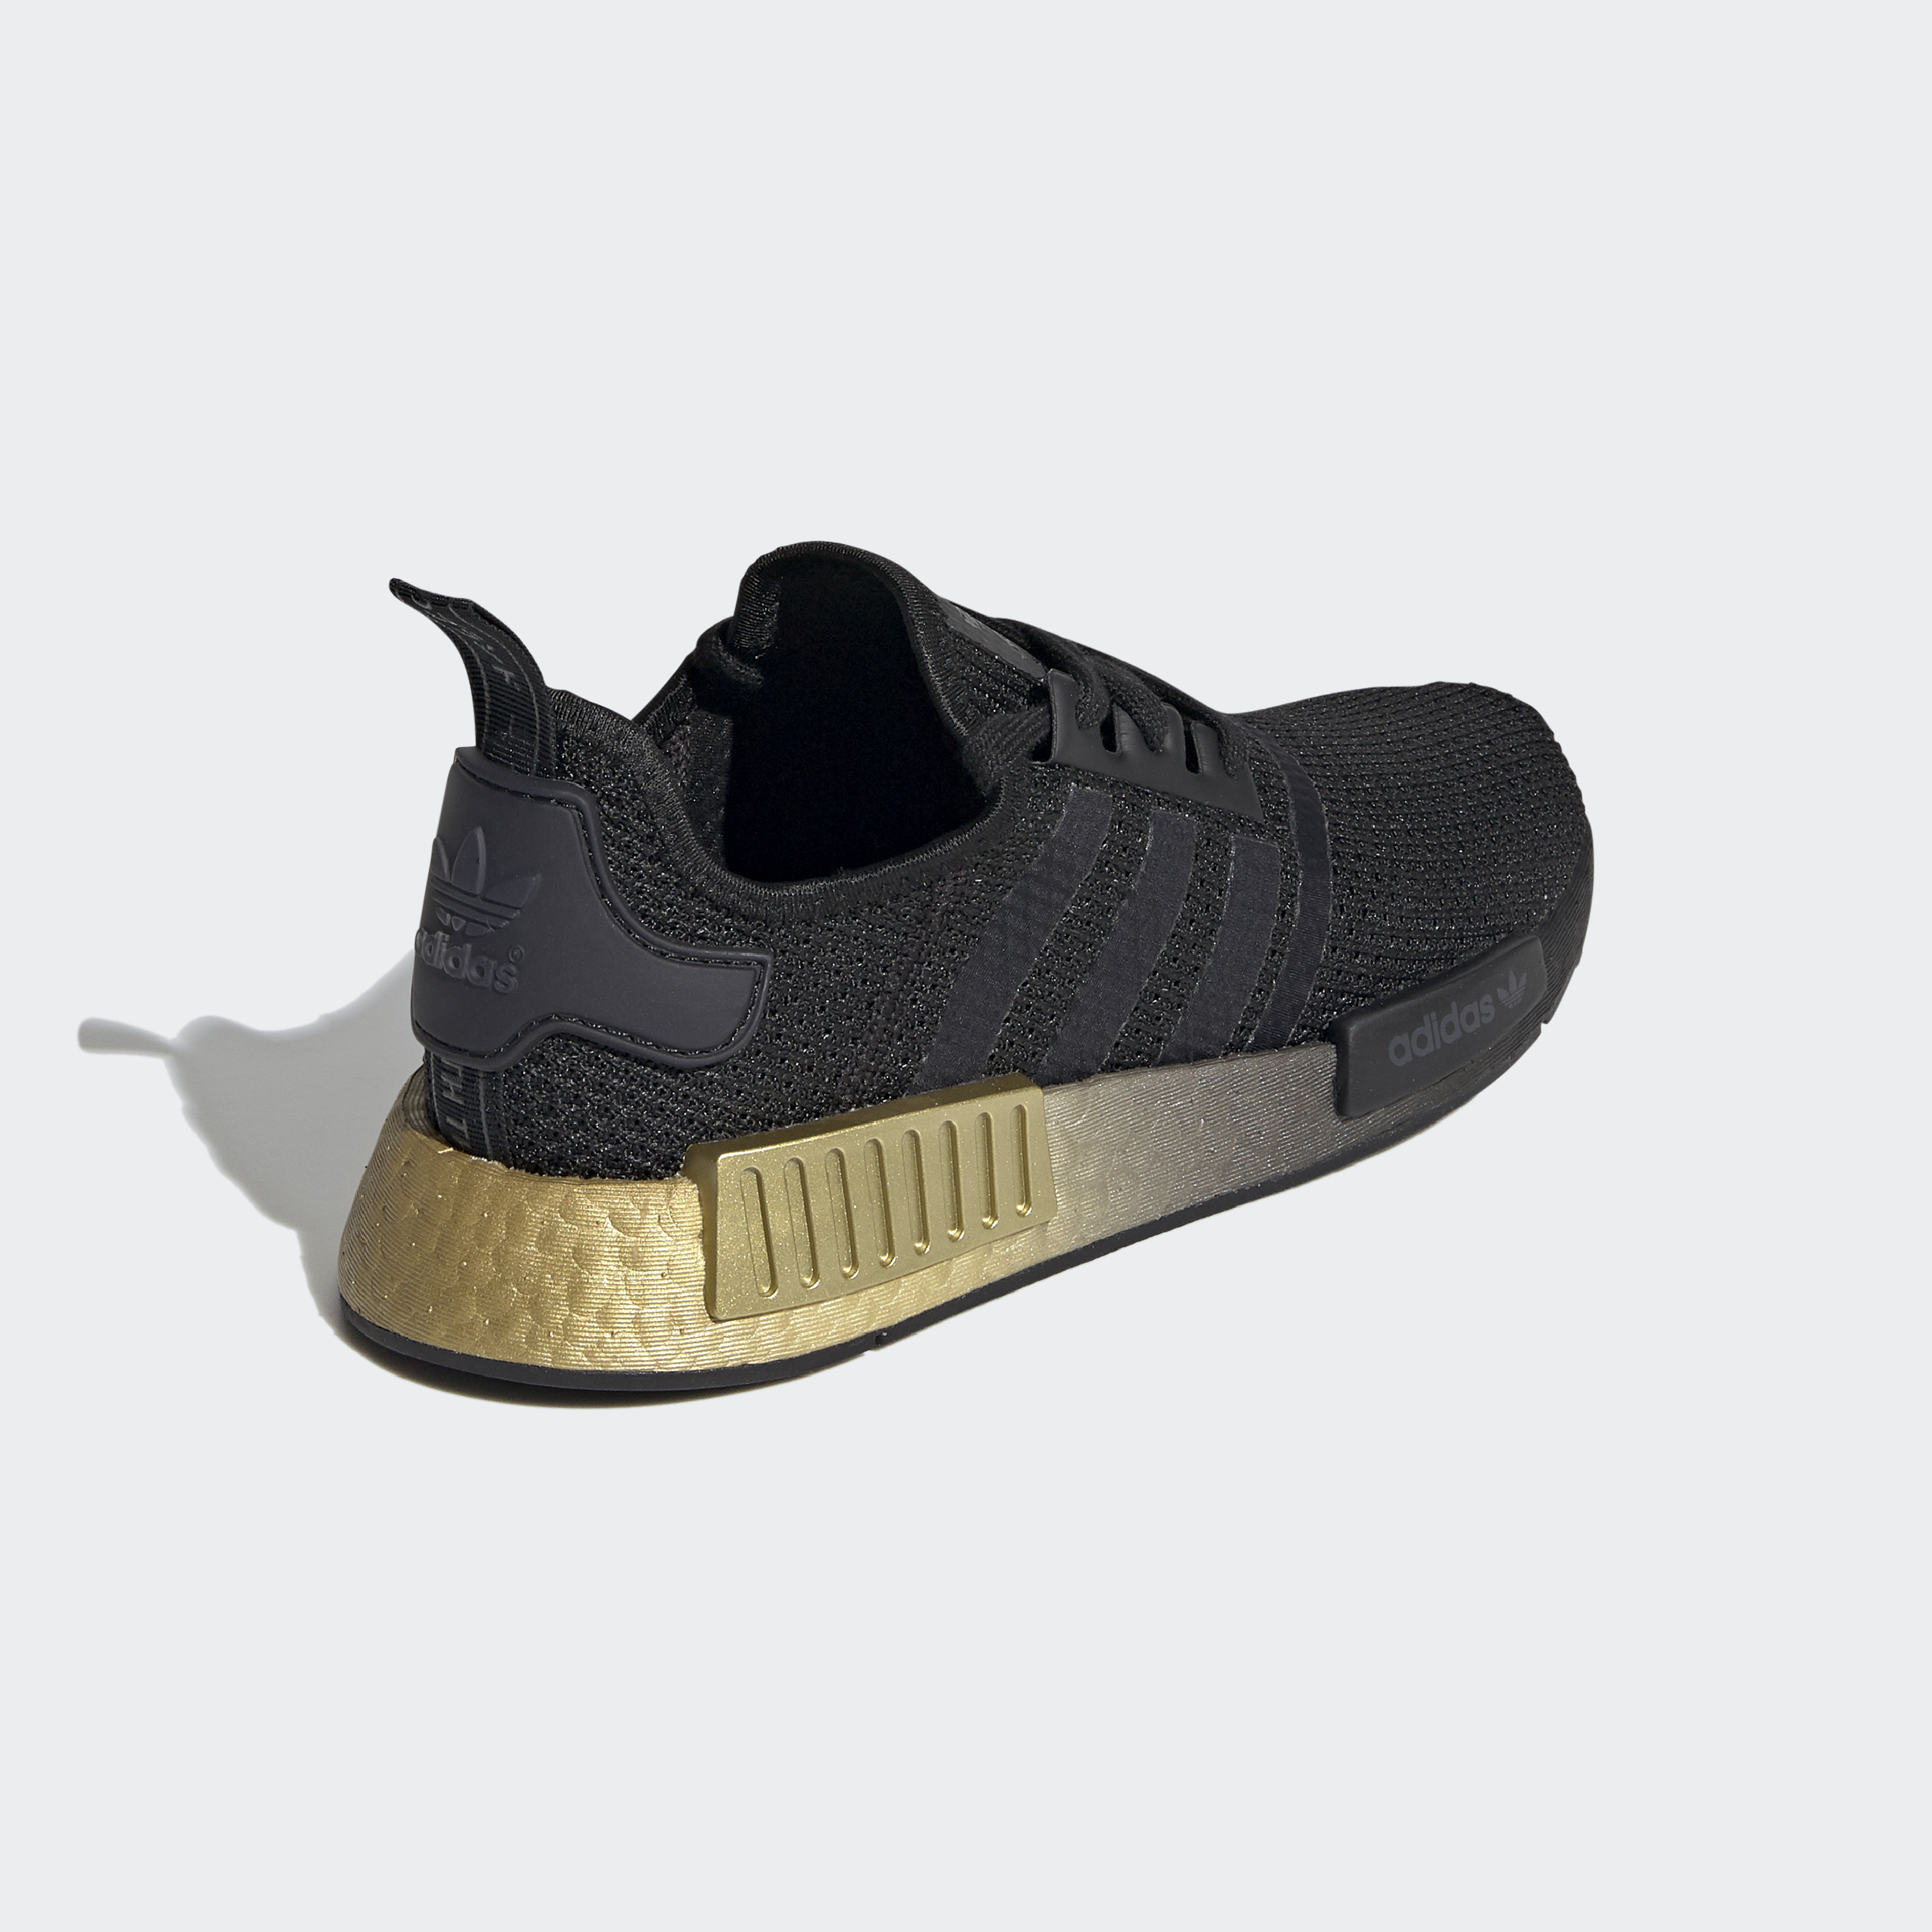 adidas-NMD-R1-Shoes-Women-039-s-Athletic-amp-Sneakers thumbnail 17